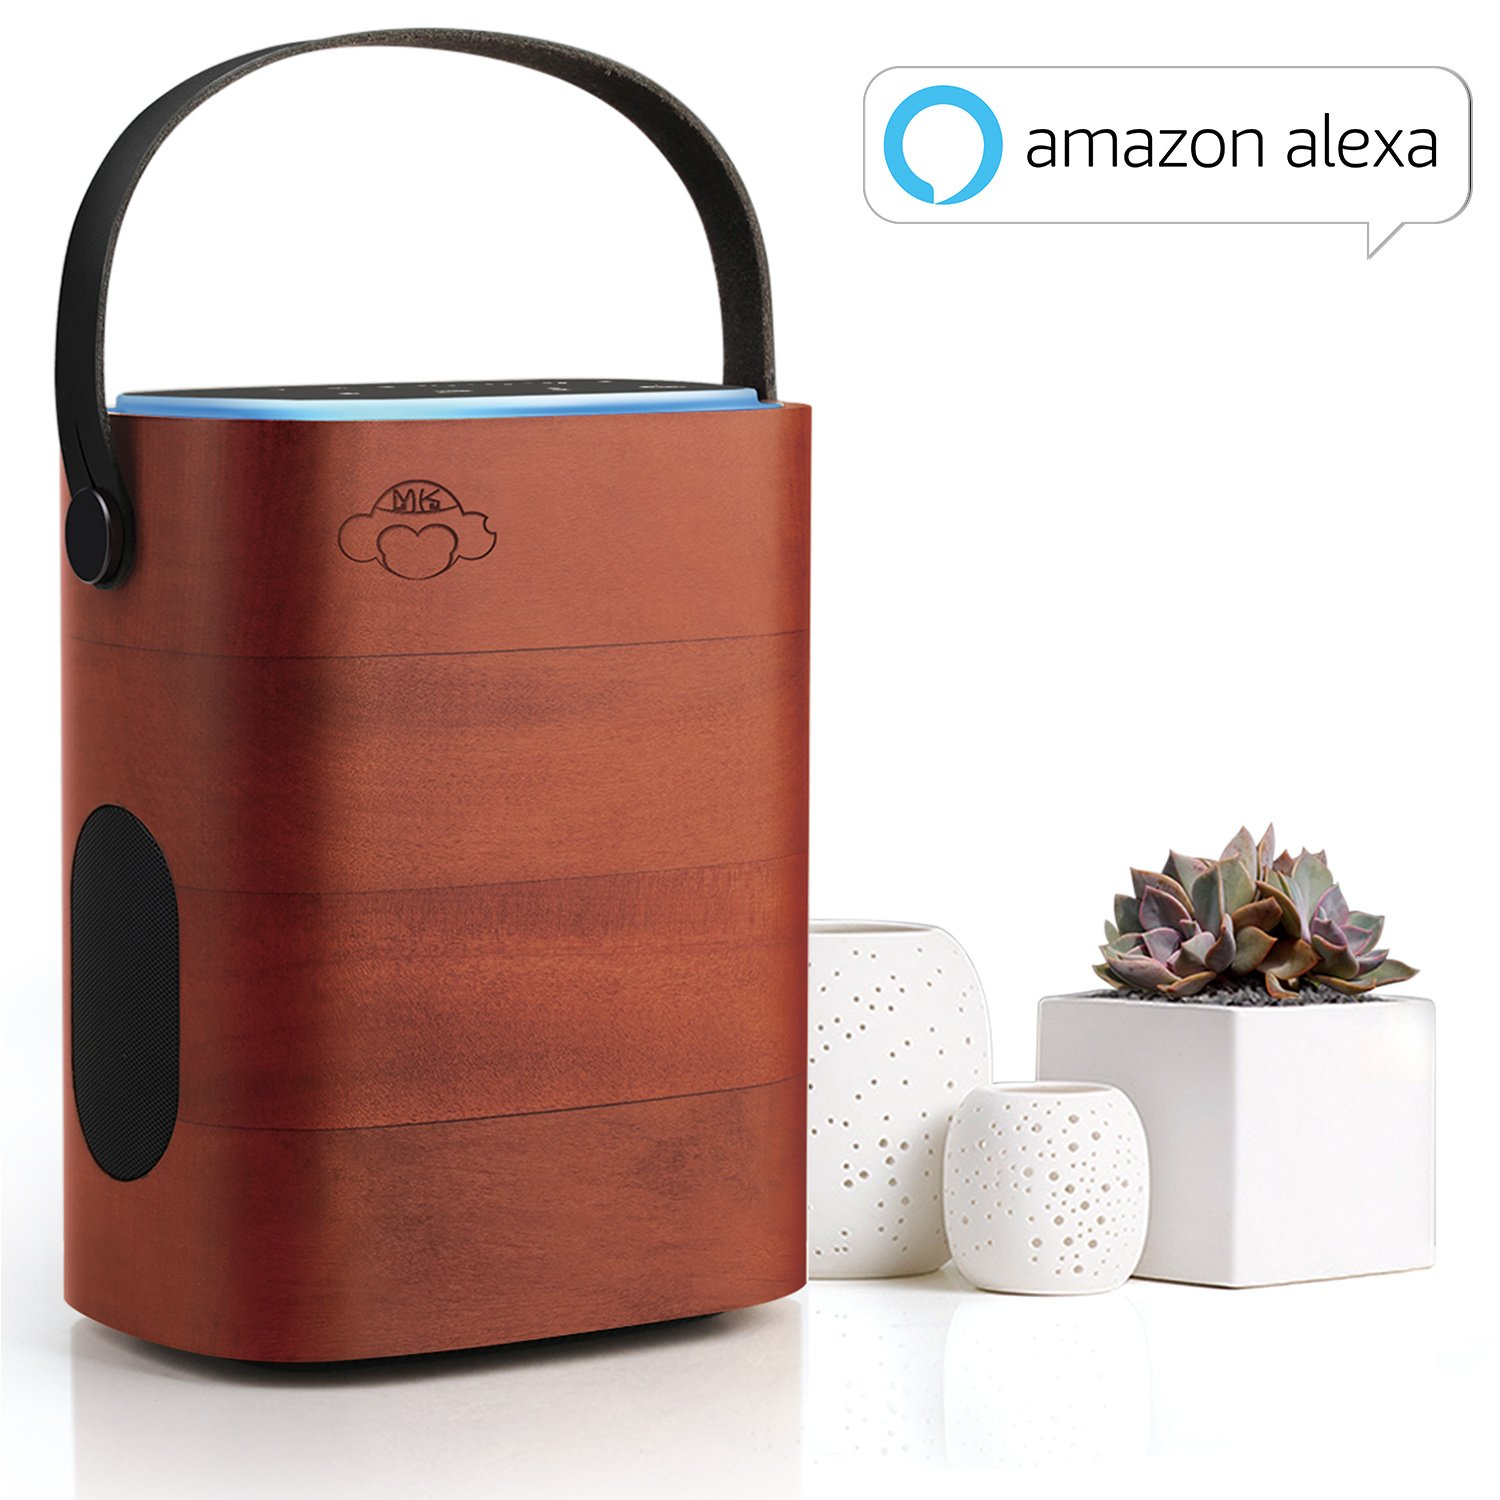 Portable Smart Speaker Works with Amazon Alexa Multi Room Use Farfield Voice-activated without tap WiFi Bluetooth speaker with Wooden Enclosure by MK